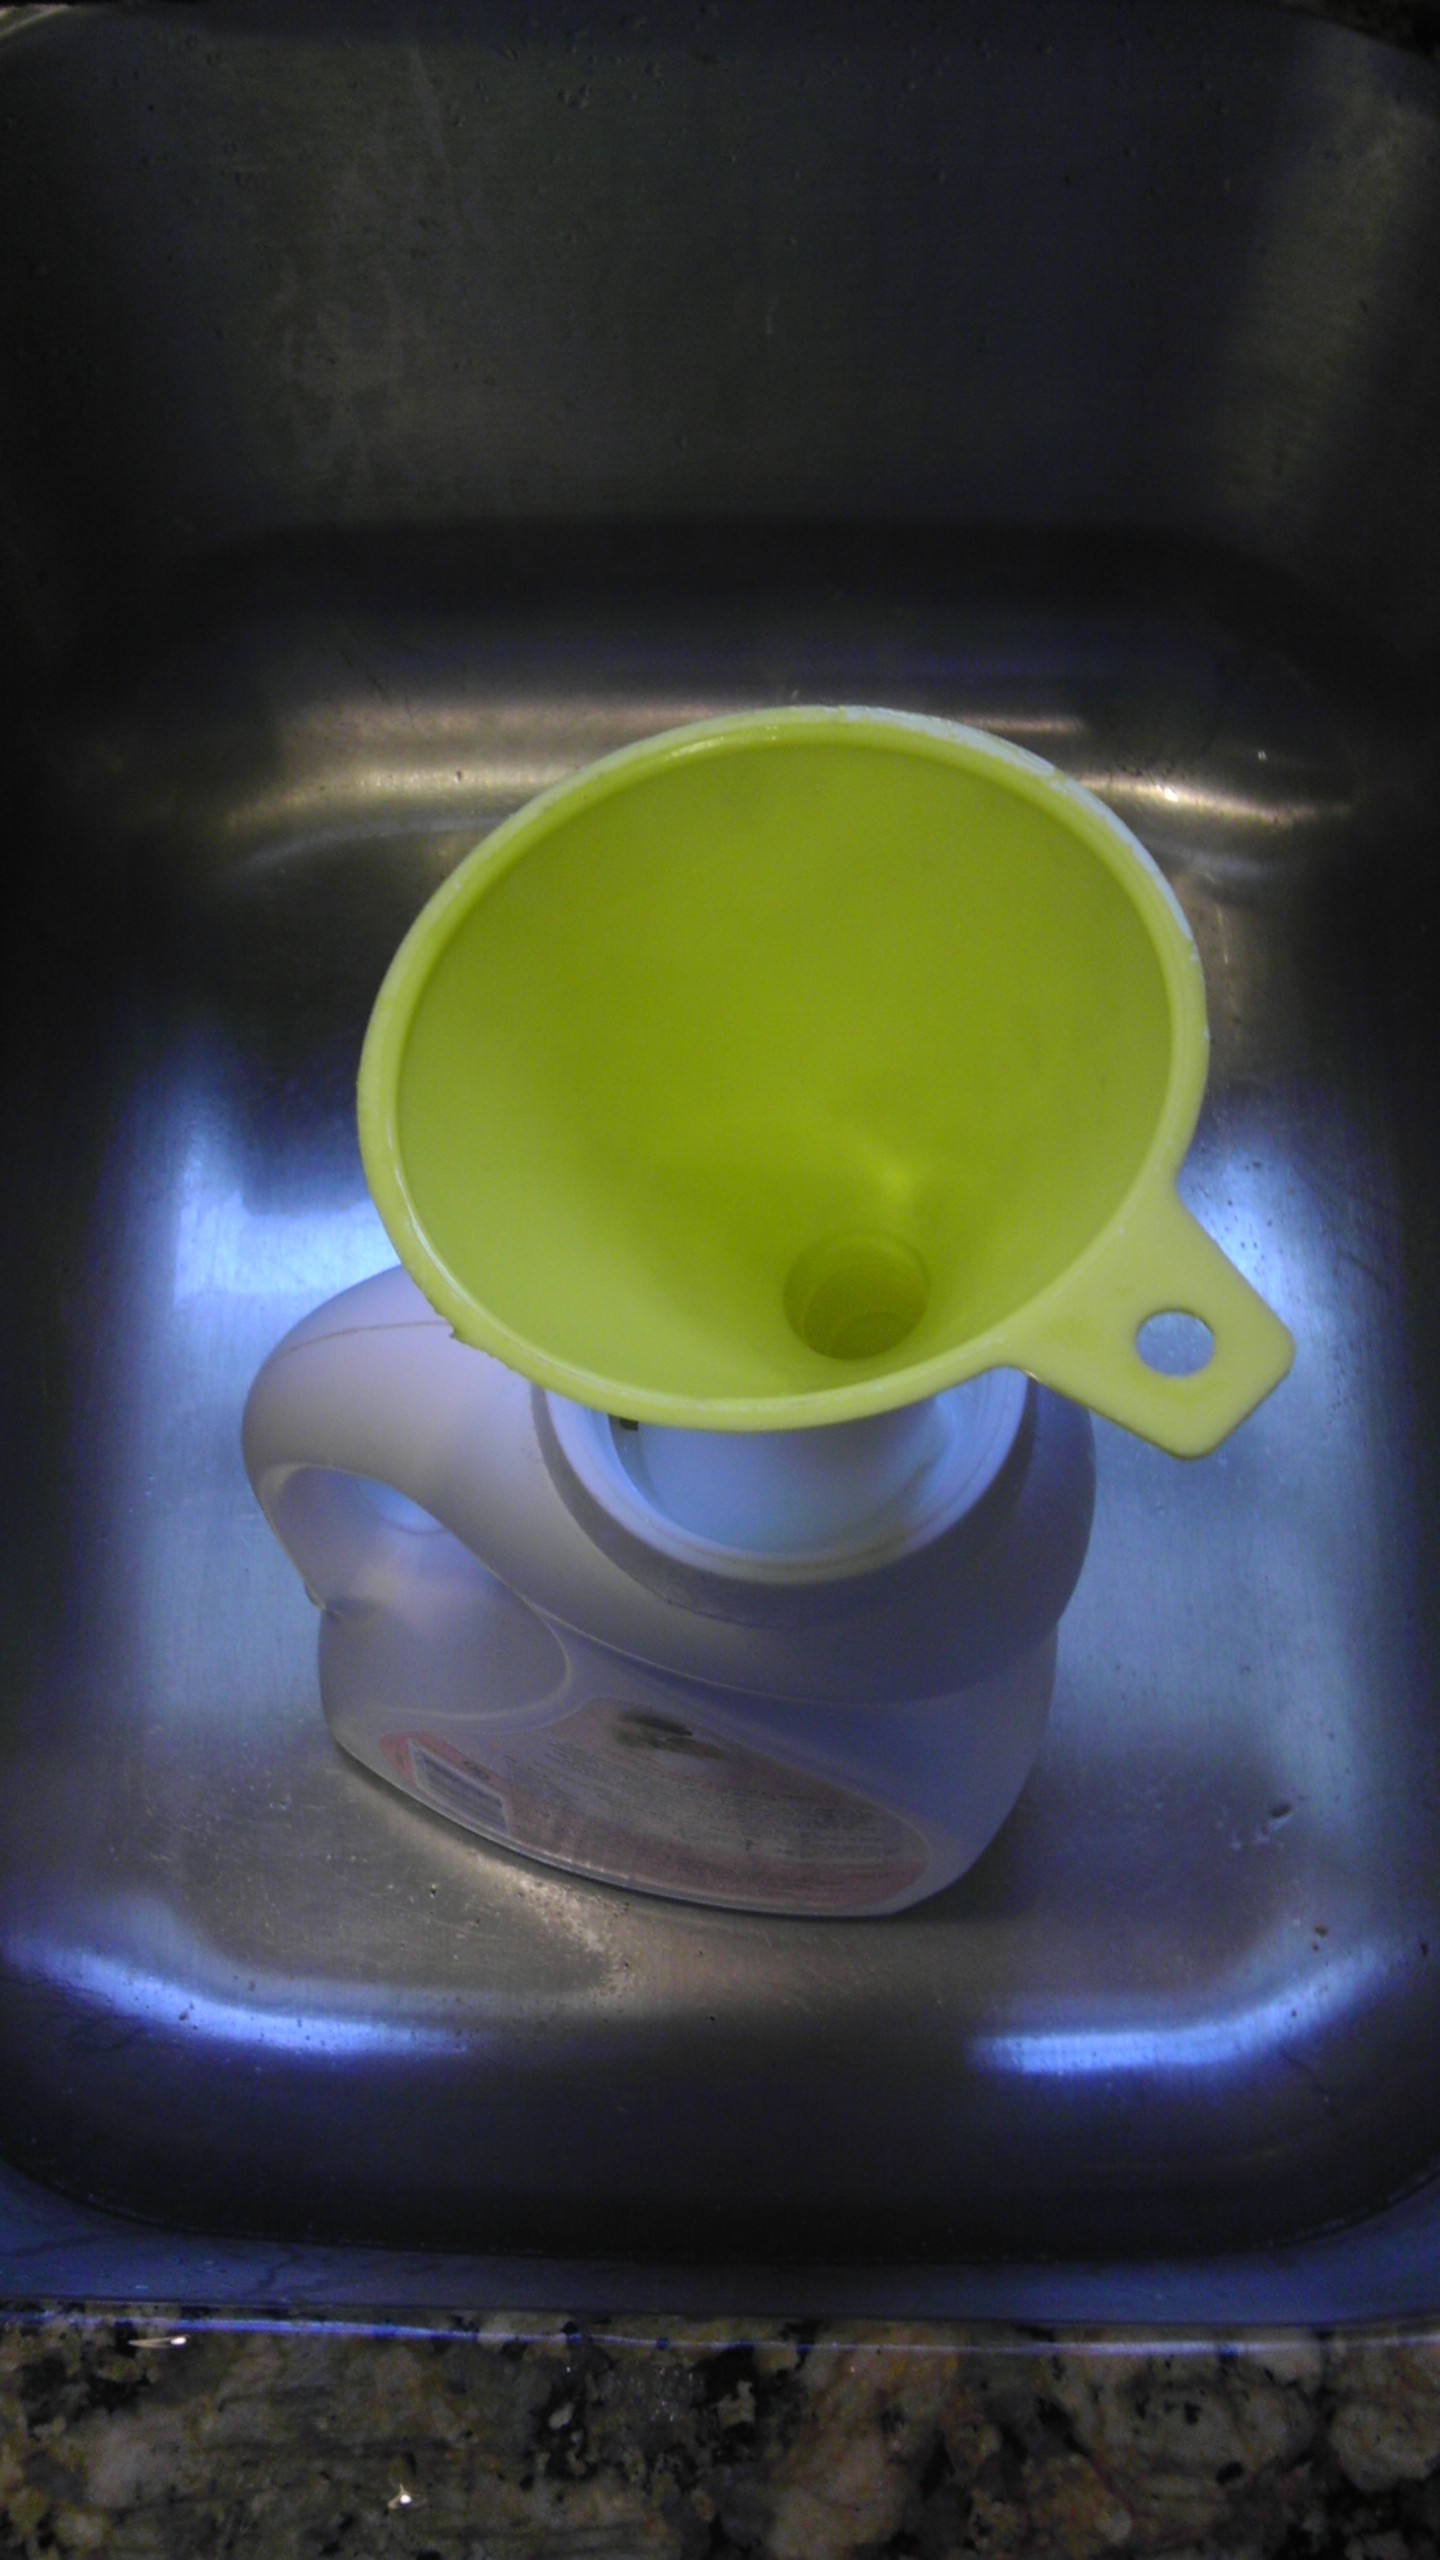 Use a Funnel to Pour the Detergent into containers